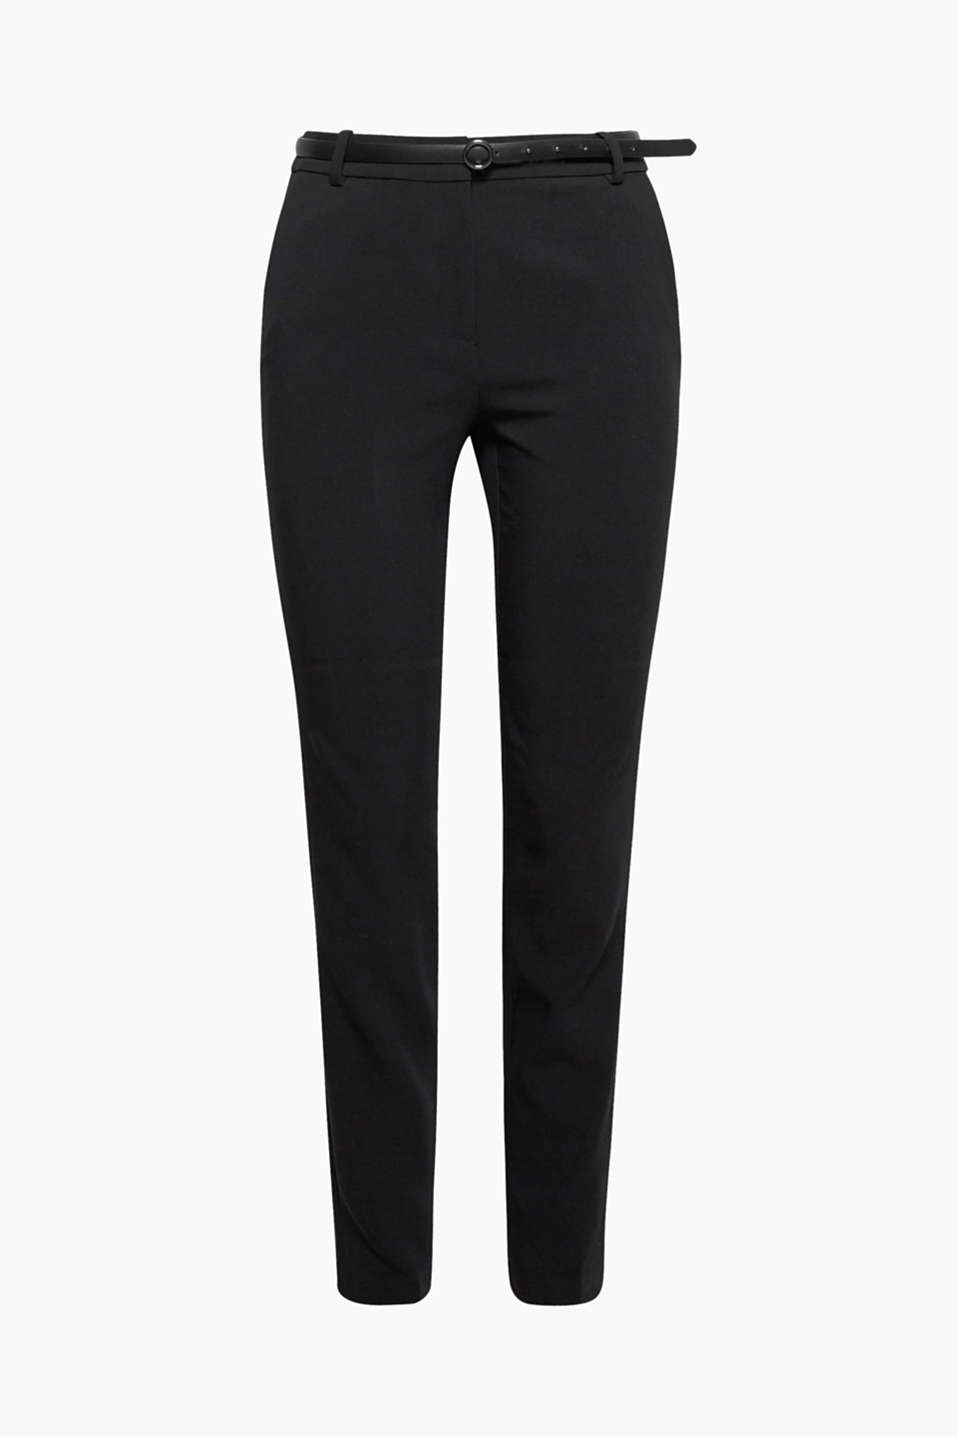 Comfy business style: These slim-fitting, woven trousers are stretchy in two directions, making them super comfy!